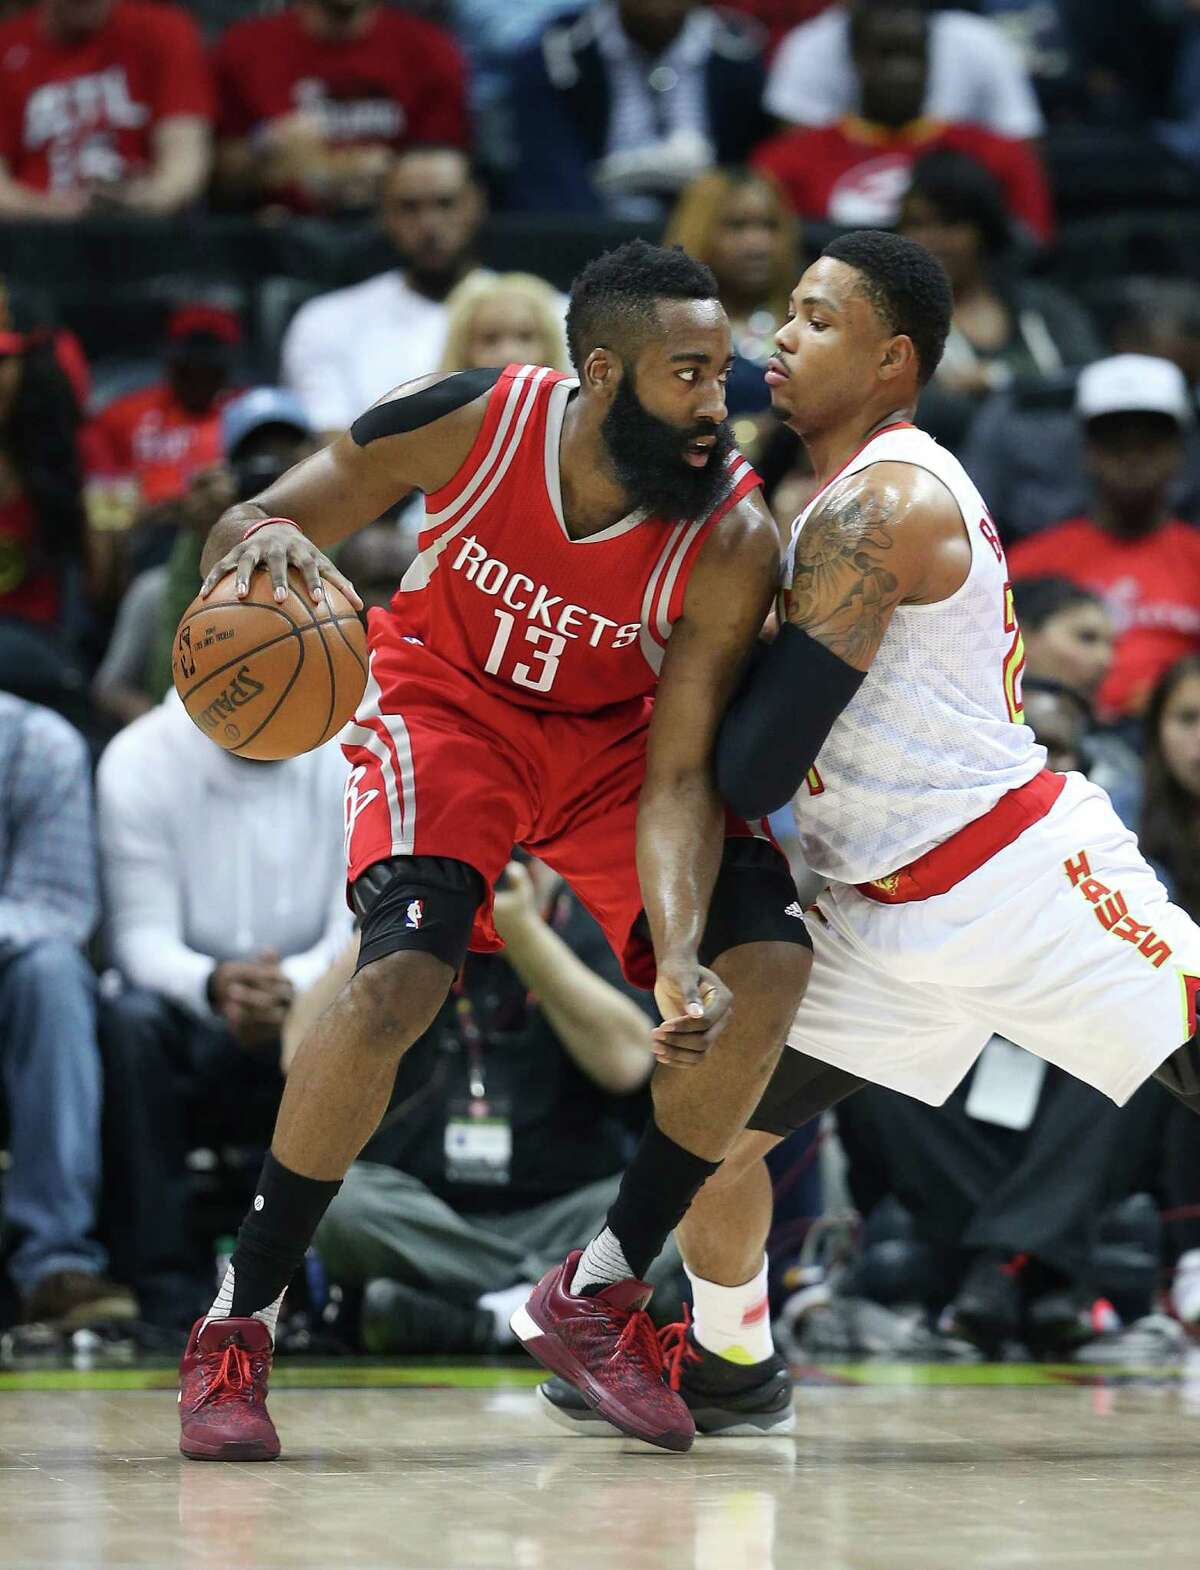 Houston Rockets guard James Harden (13) is guarded by Atlanta Hawks forward Kent Bazemore (24) in the first half of an NBA basketball game, Saturday, March 19, 2016, in Atlanta.